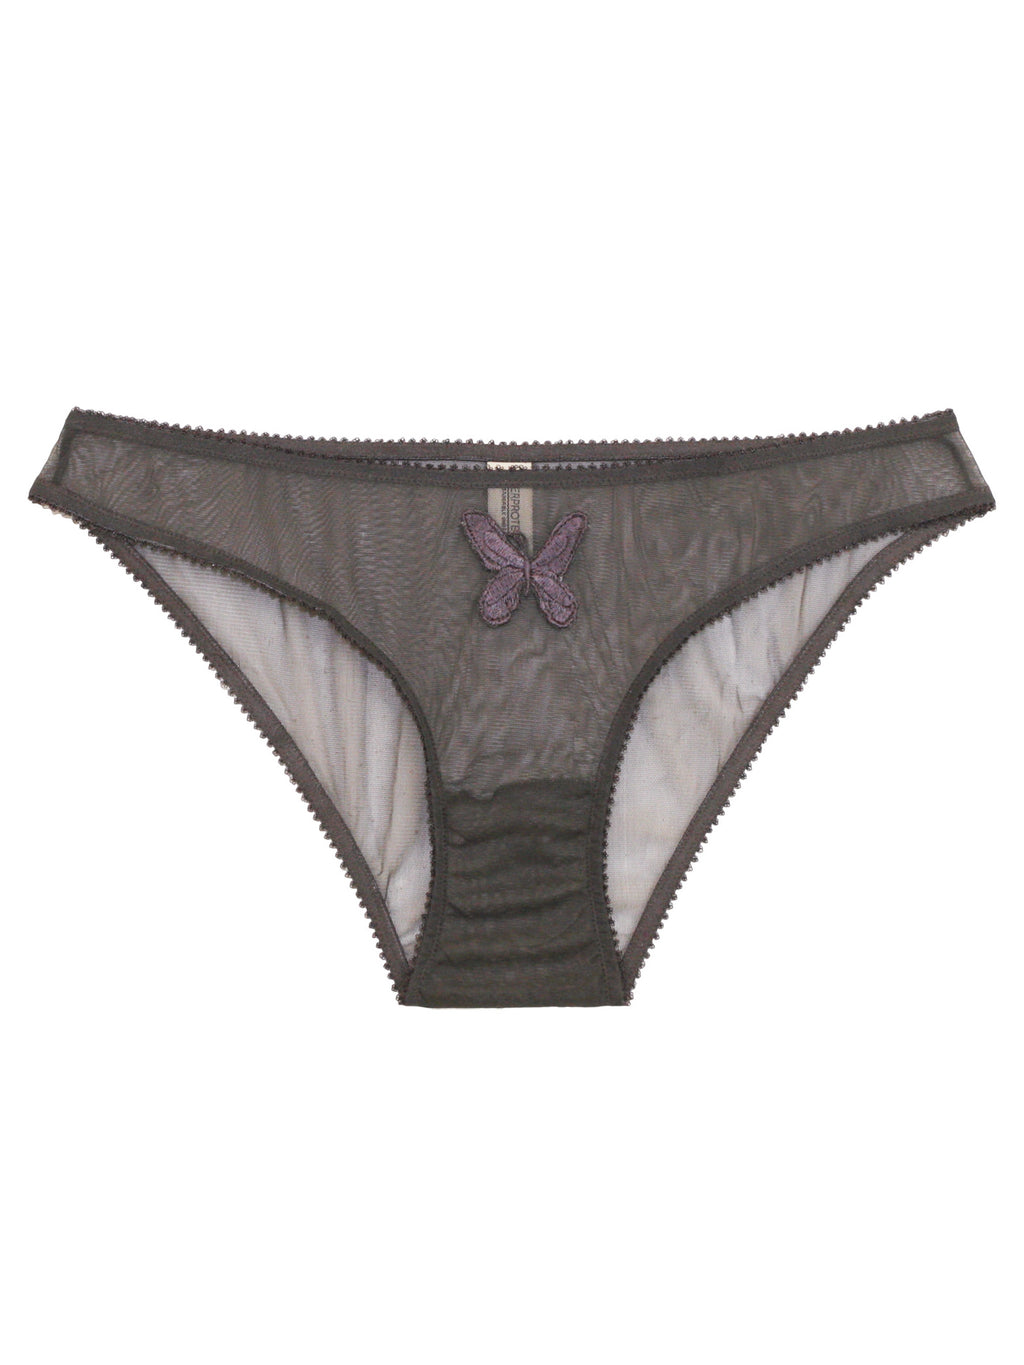 Betty Underwear by Underprotection | Sustainable Intimates Finding Rosie Australia